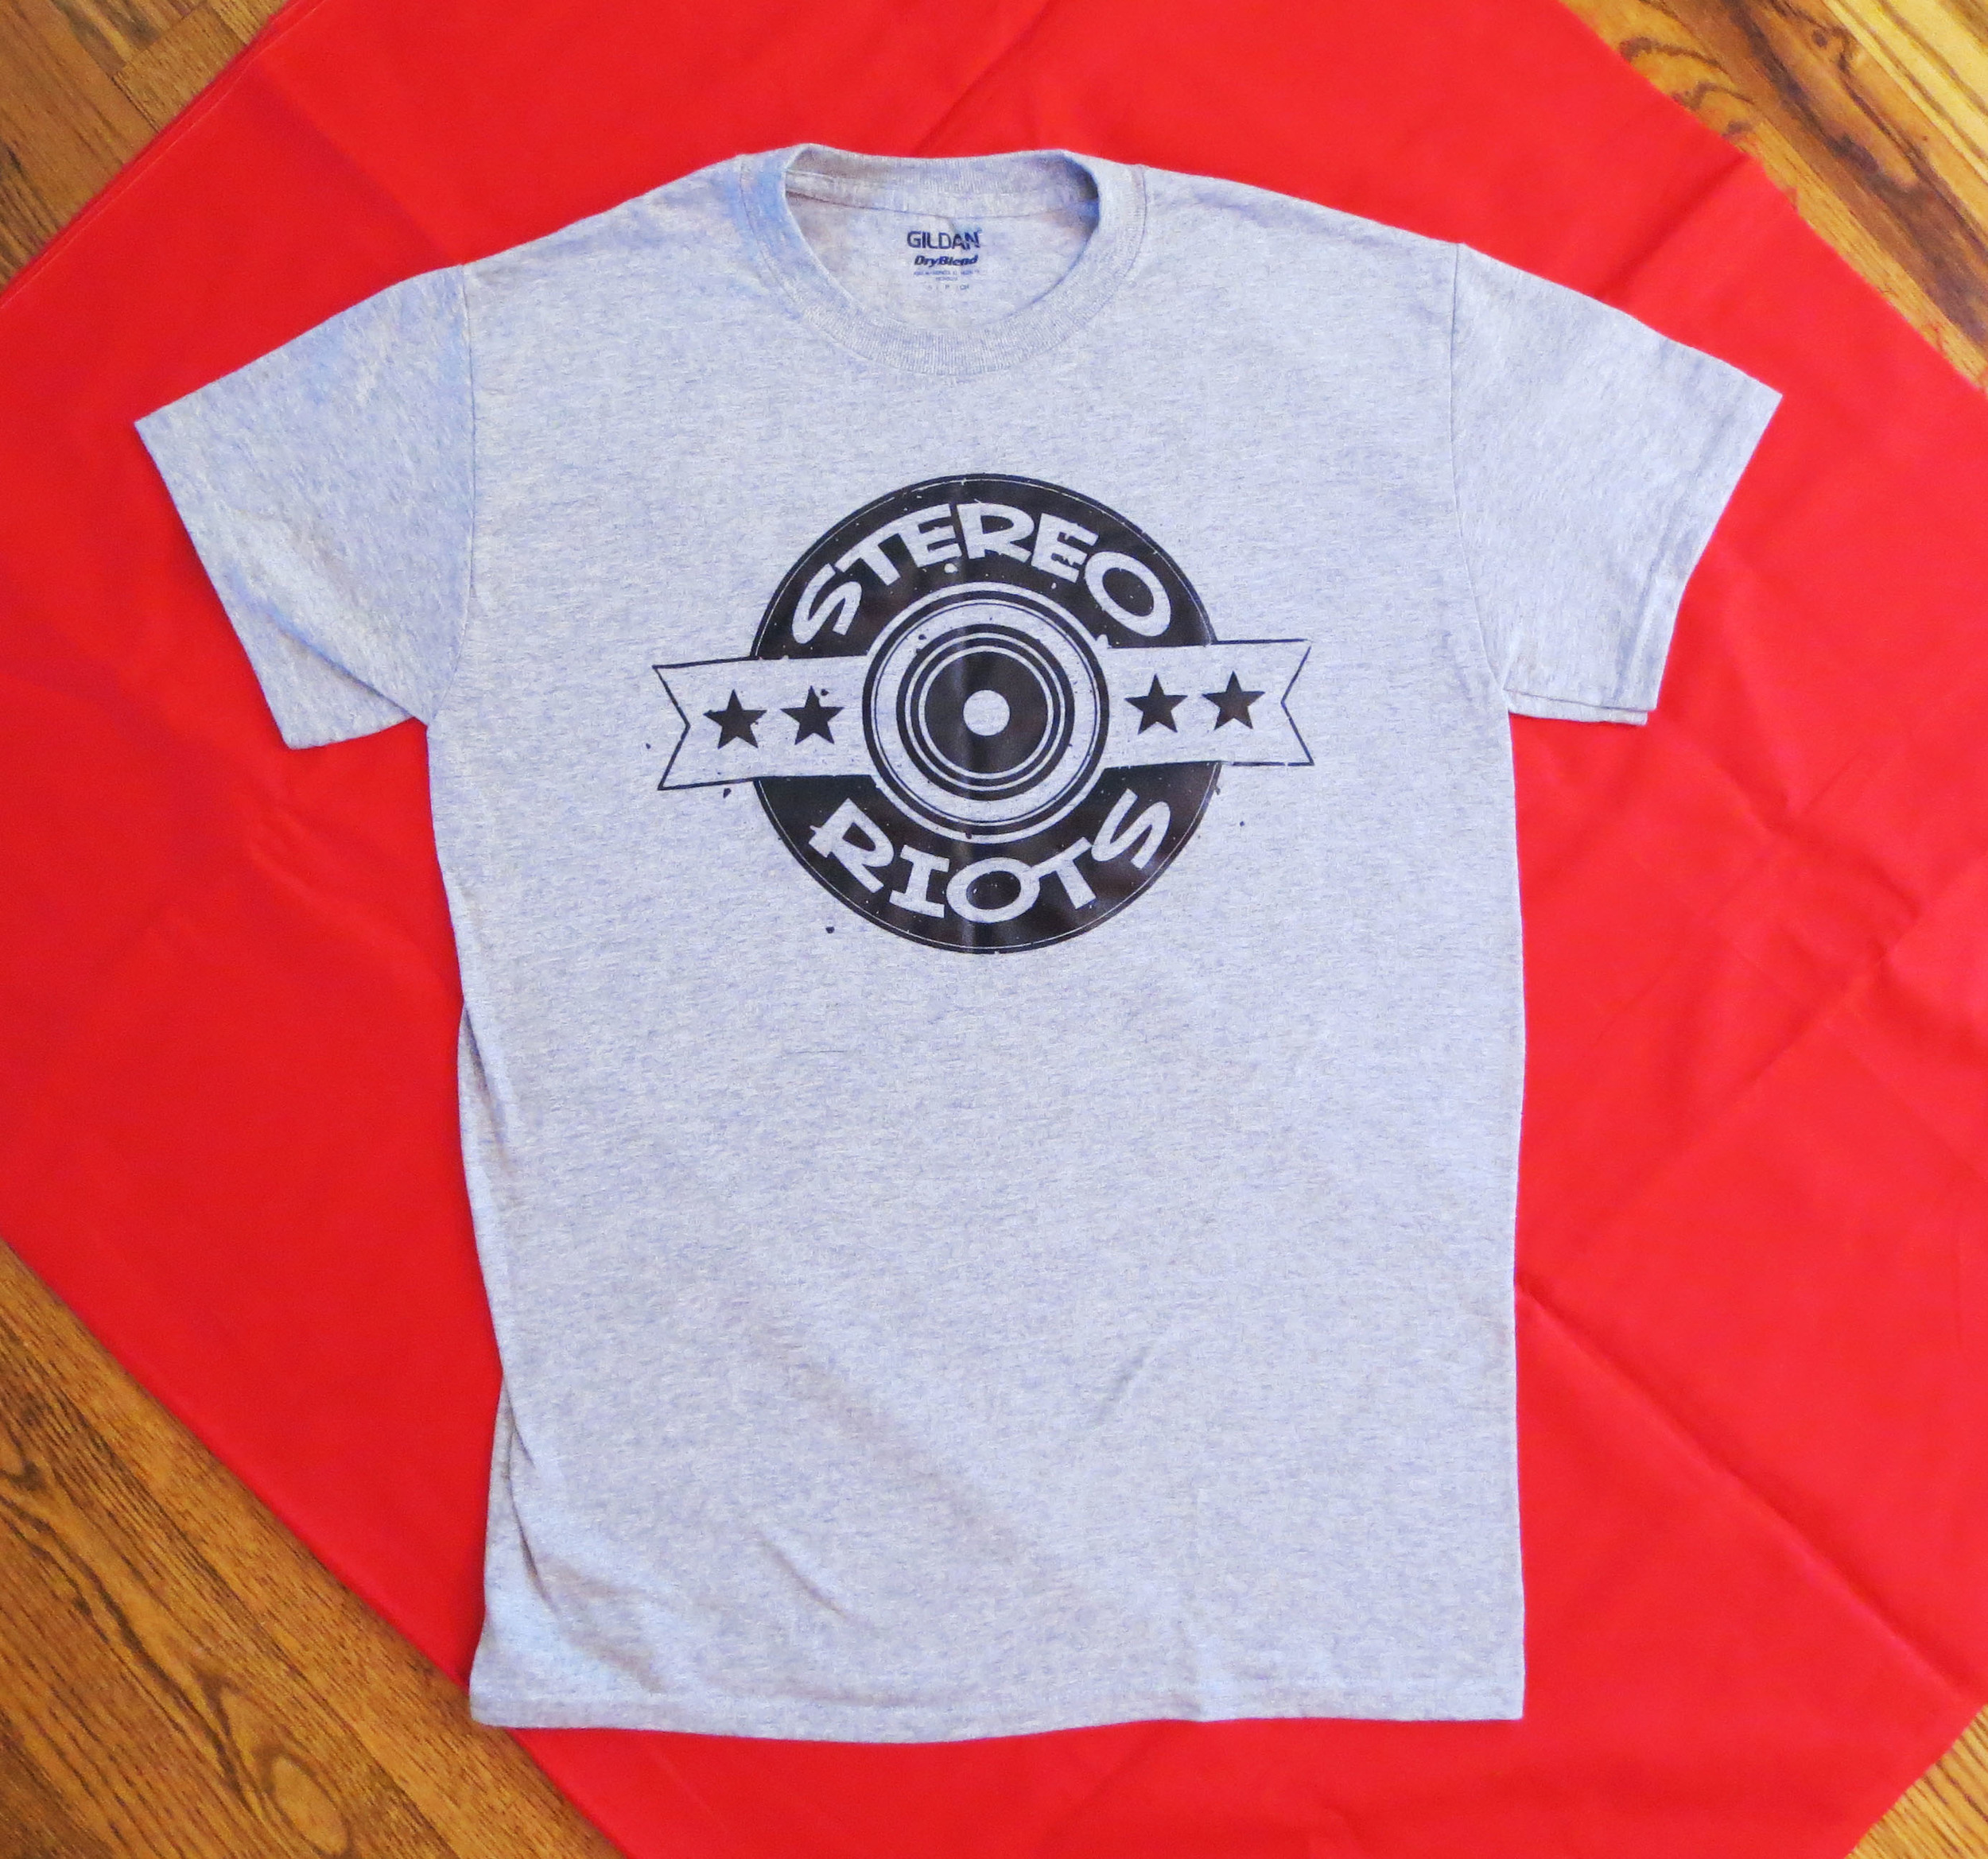 Cotton, T-Shirt, Dry Blend, designed by Impire Clothing Co.